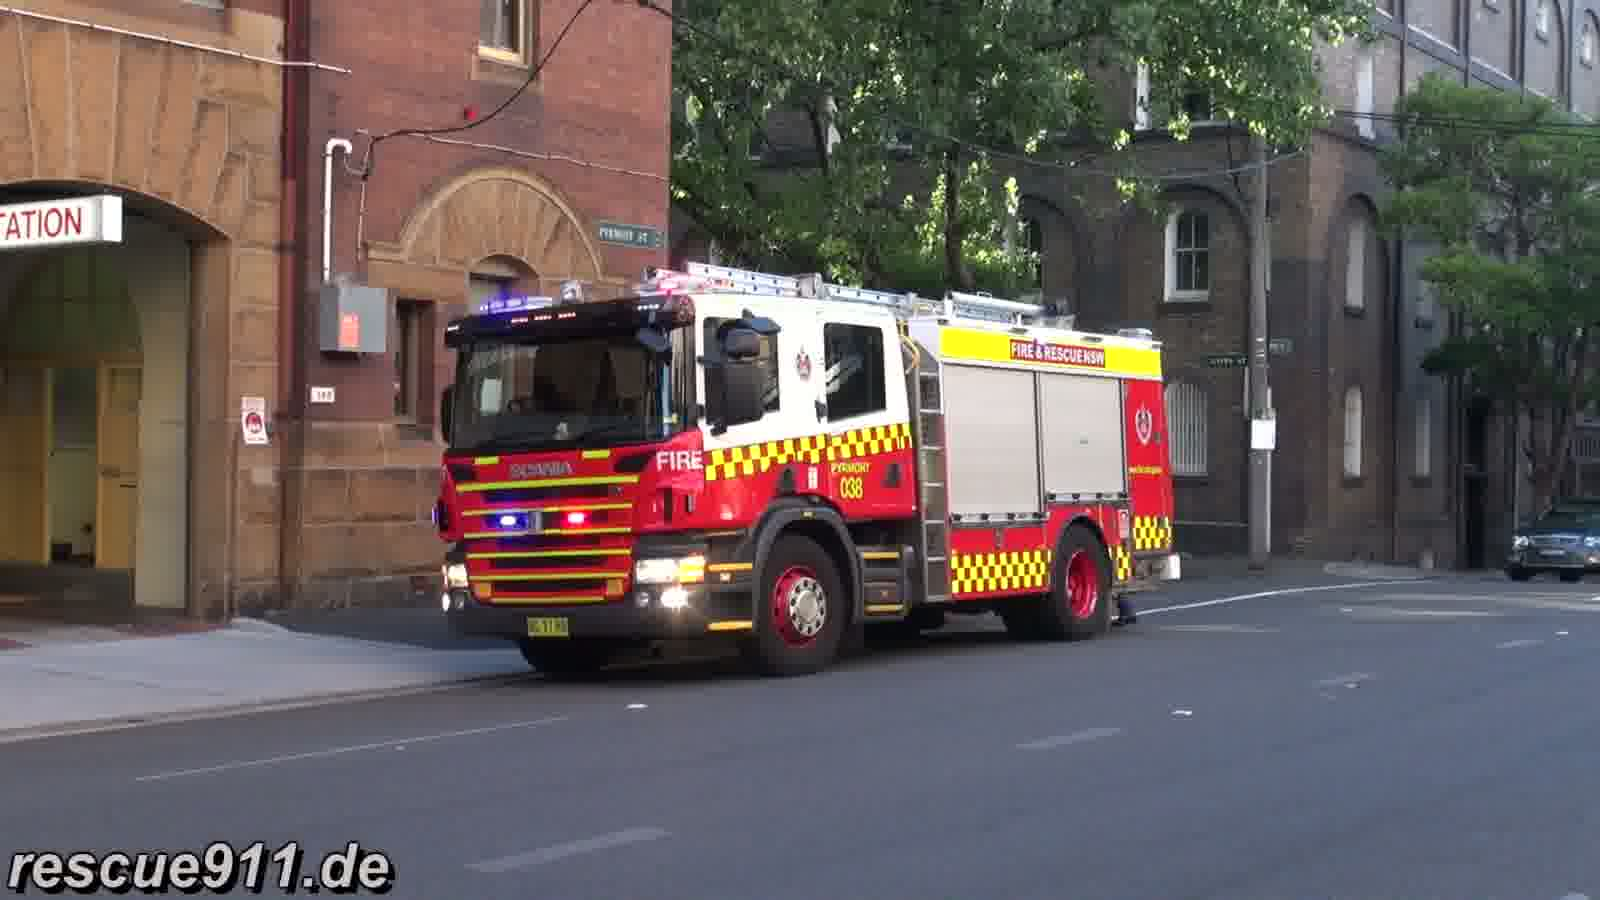 Pump 038 Pyrmont Fire & Rescue NSW (stream)